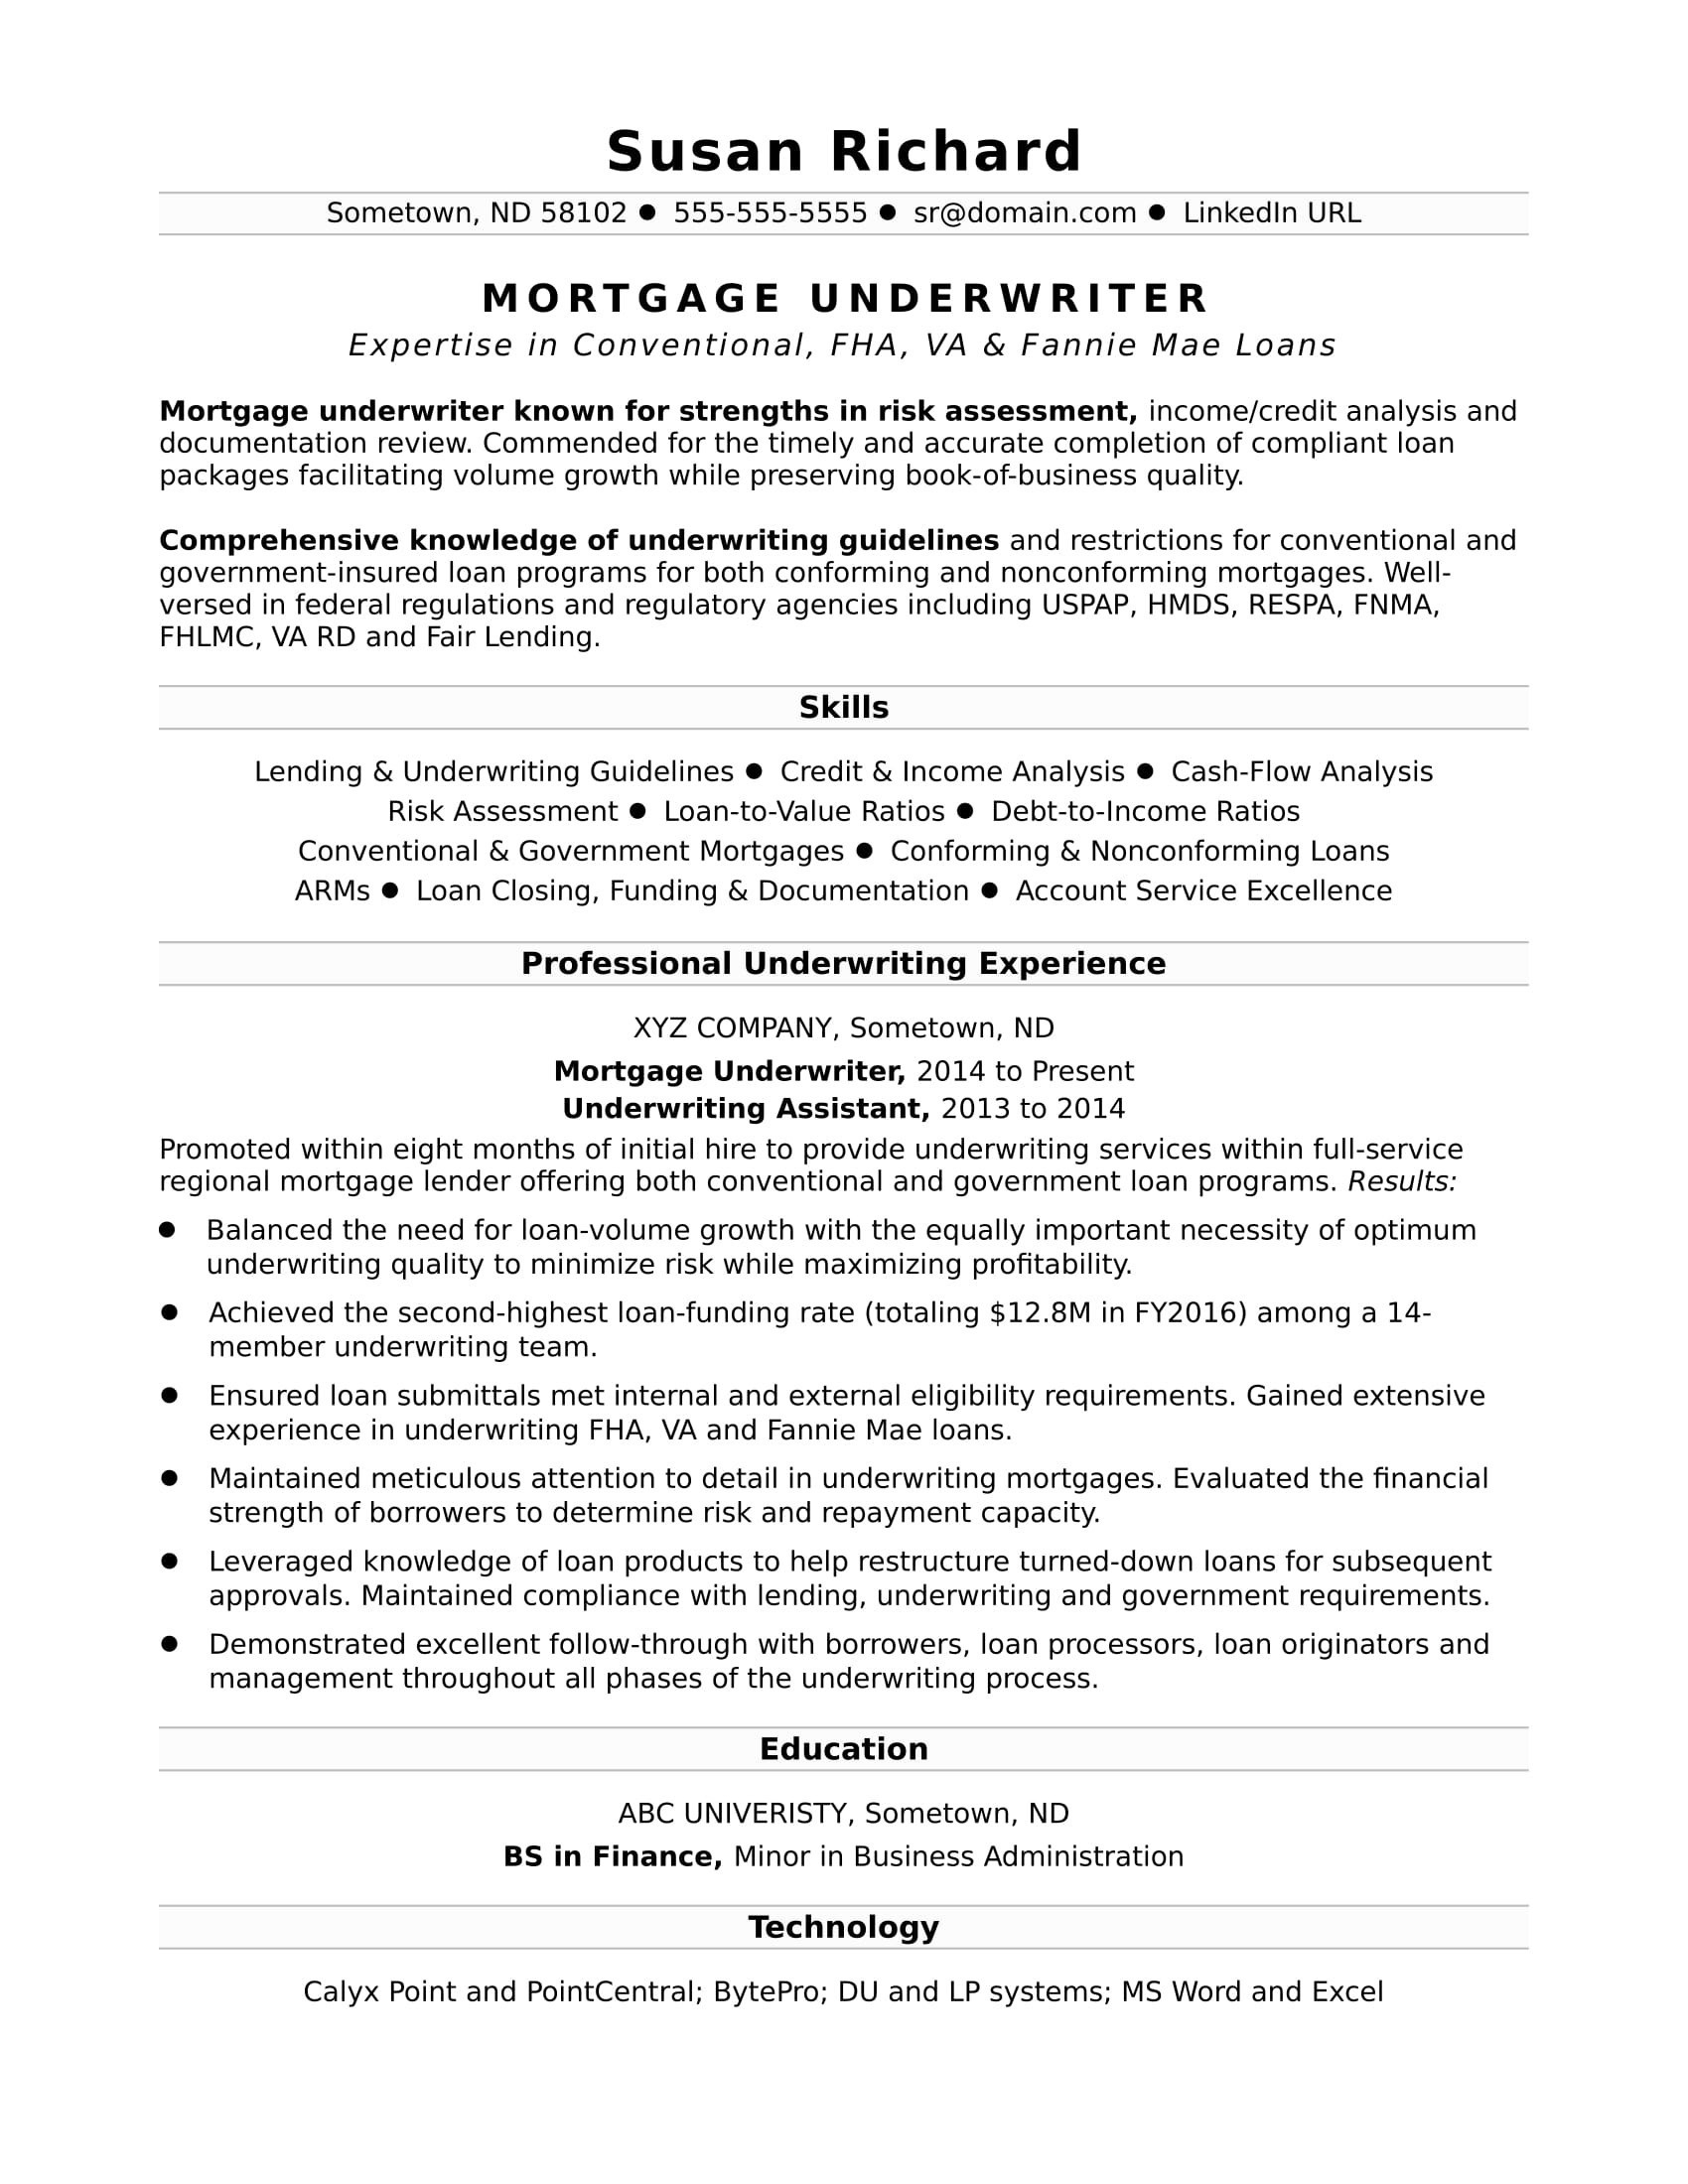 Proposal Resume Template - Rfp Cover Letter Template Collection